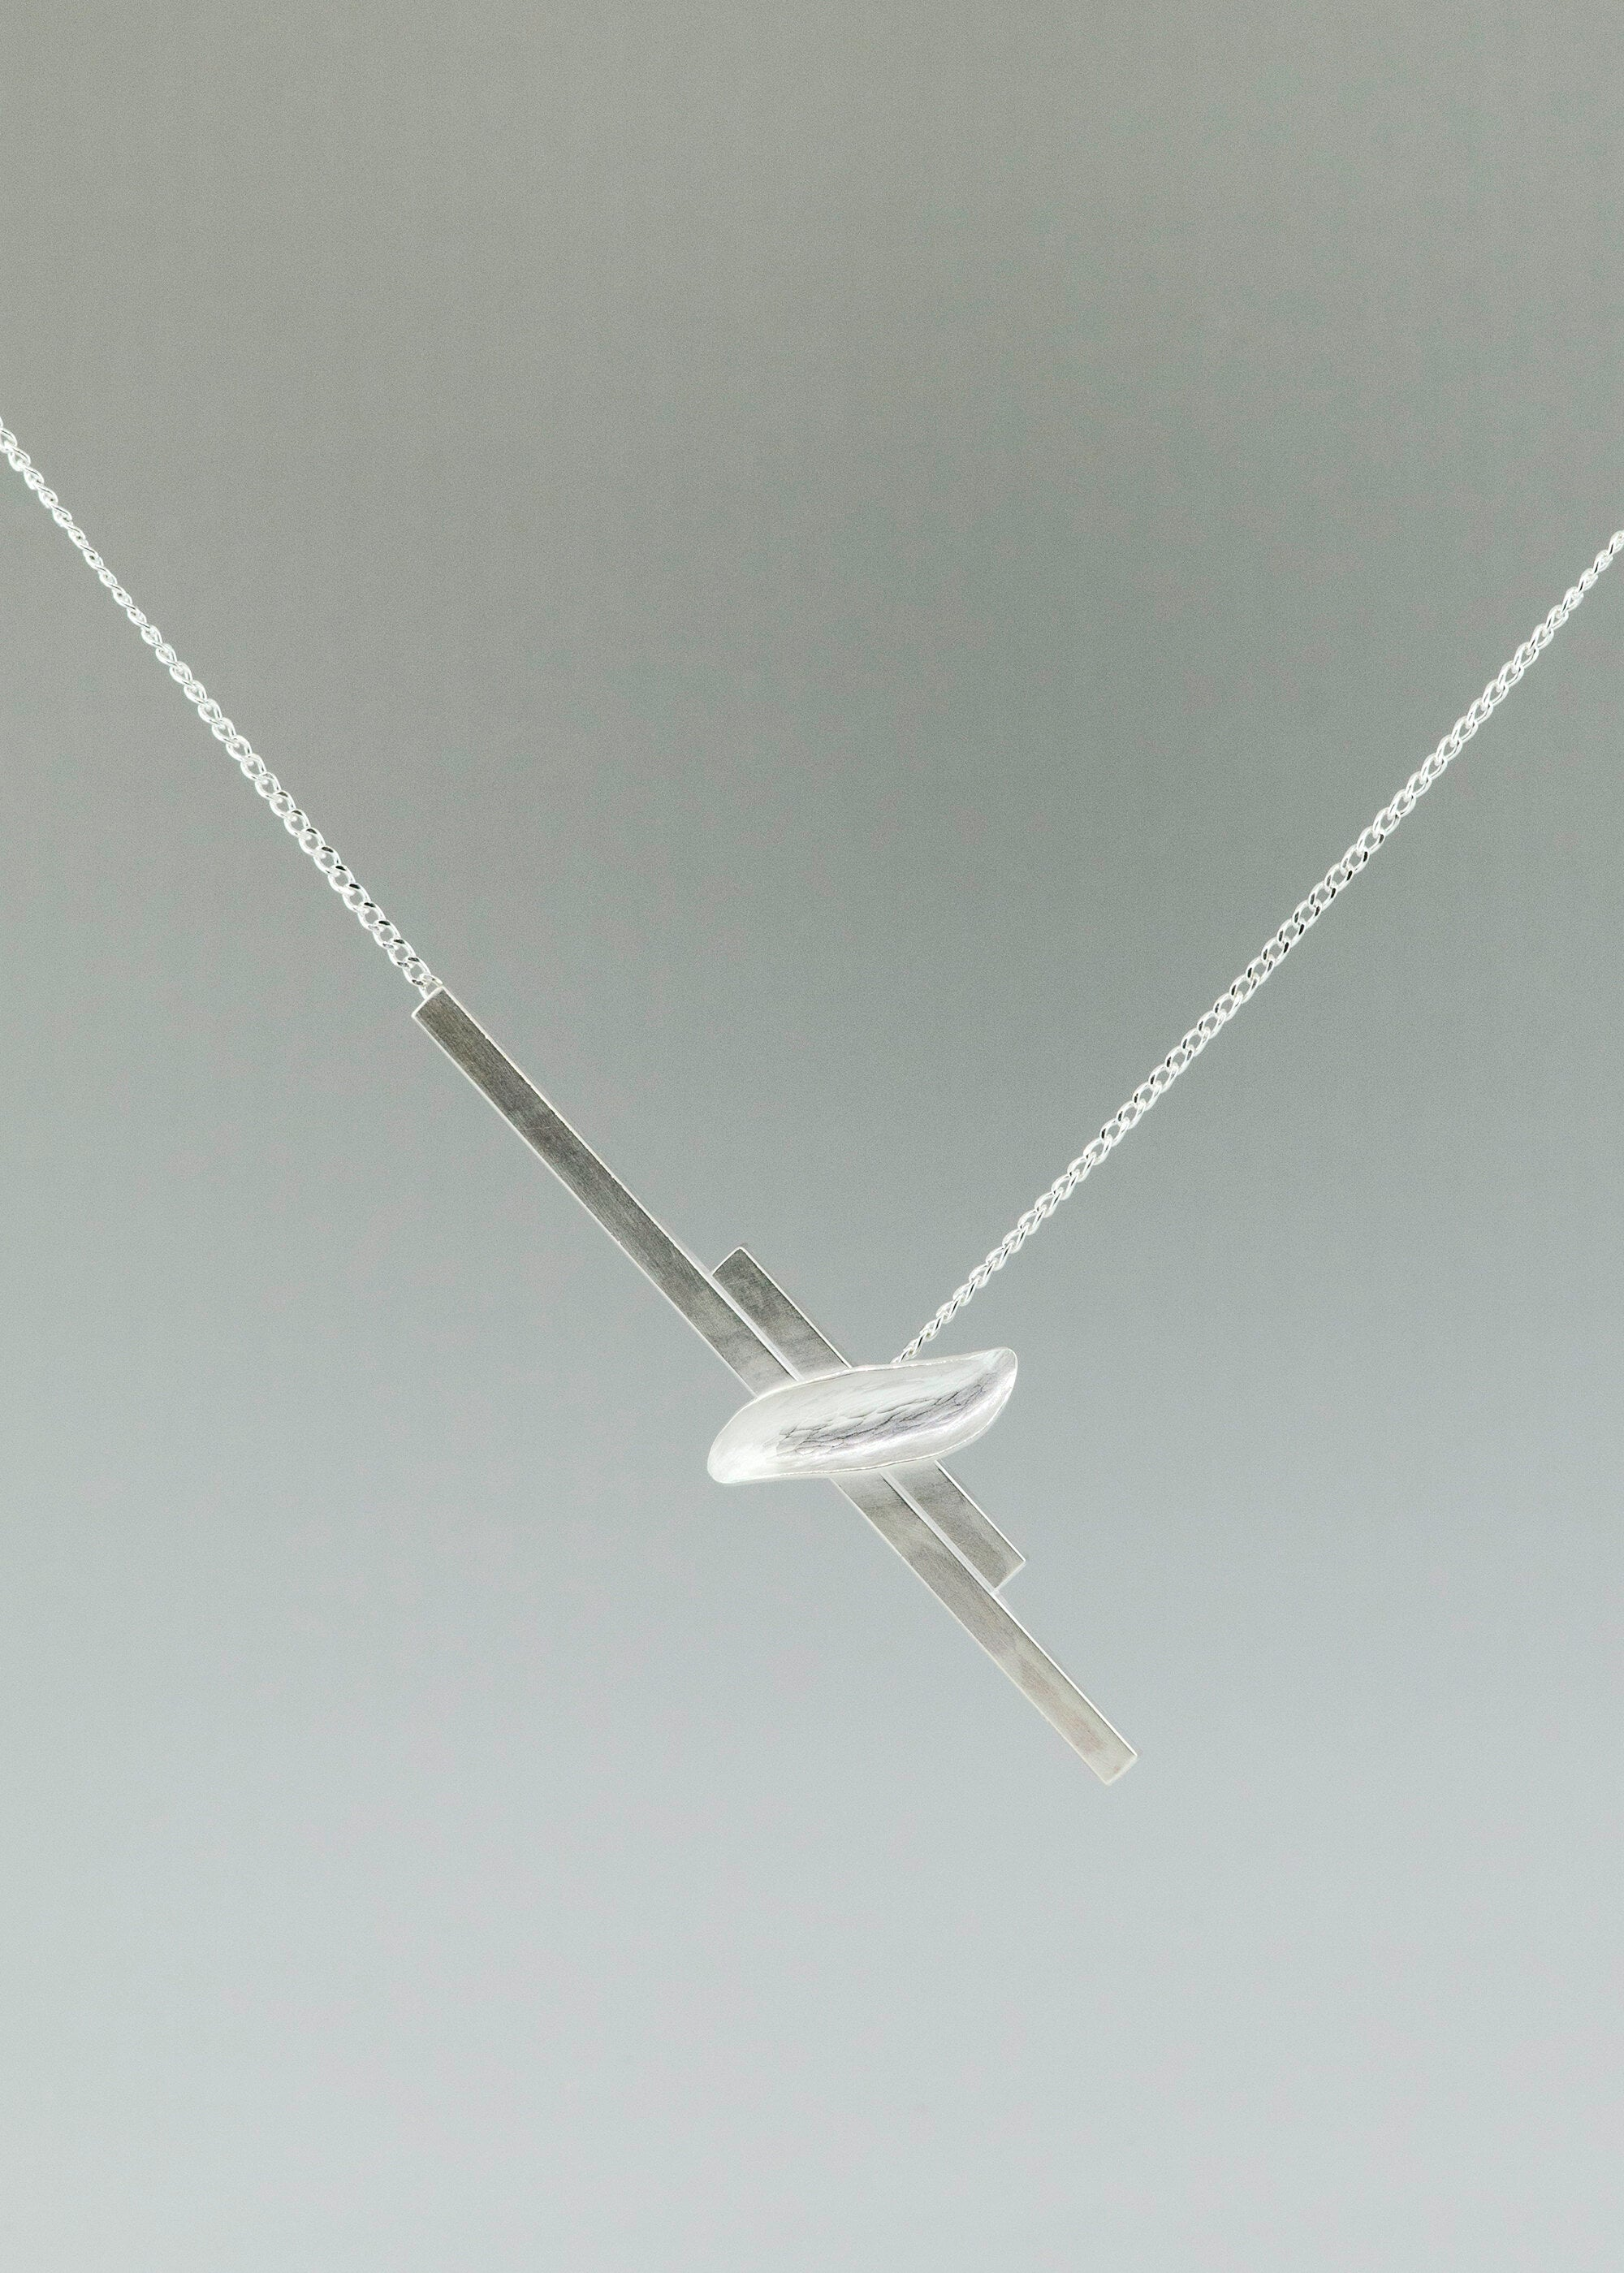 Silver Resilient Necklace